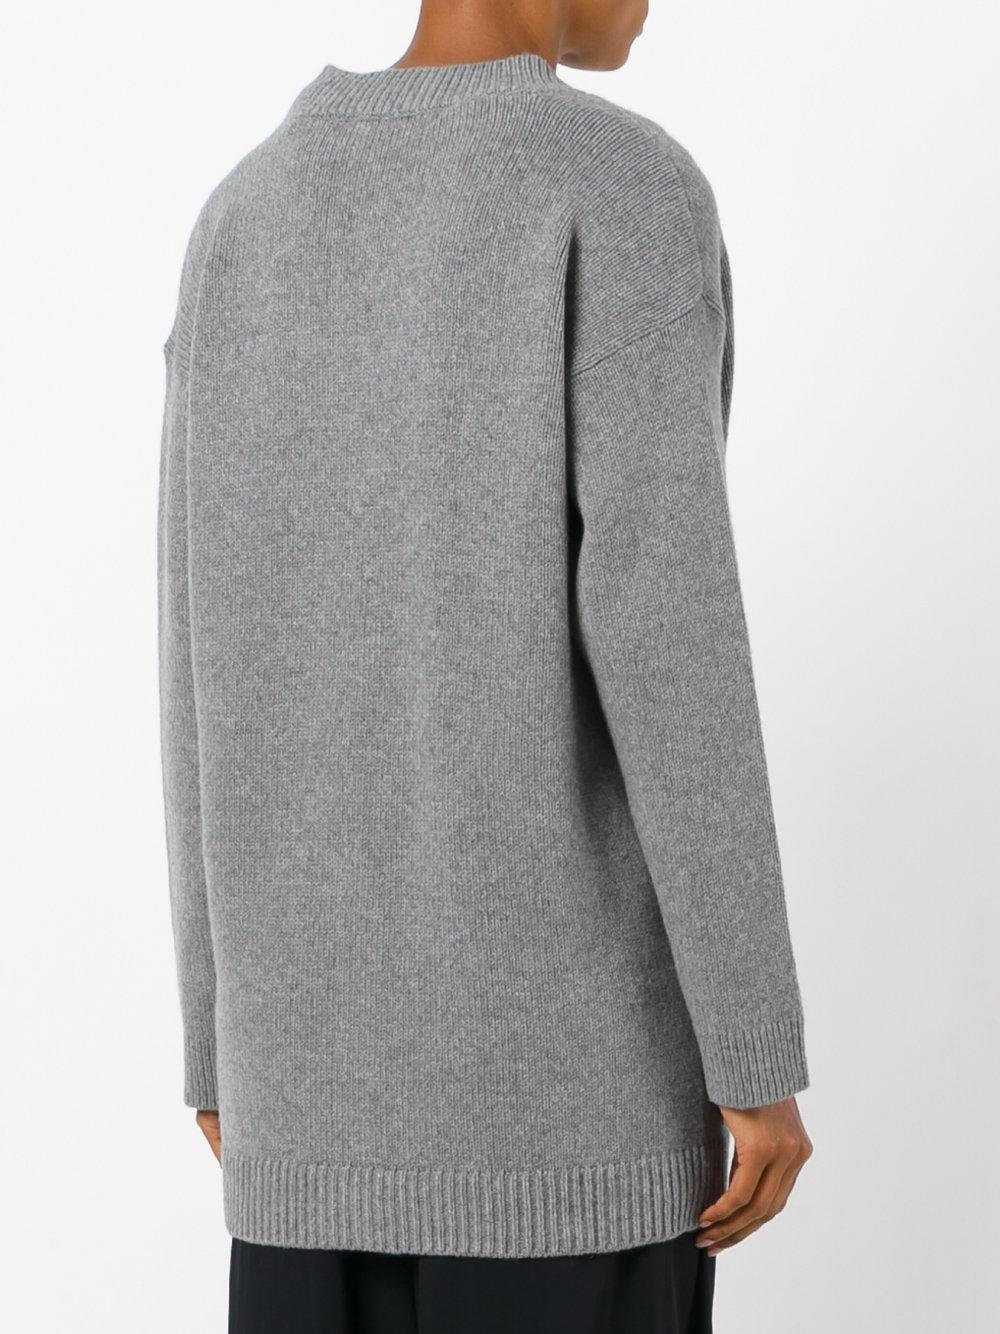 lyst dorothee schumacher oversized cardigan in gray. Black Bedroom Furniture Sets. Home Design Ideas